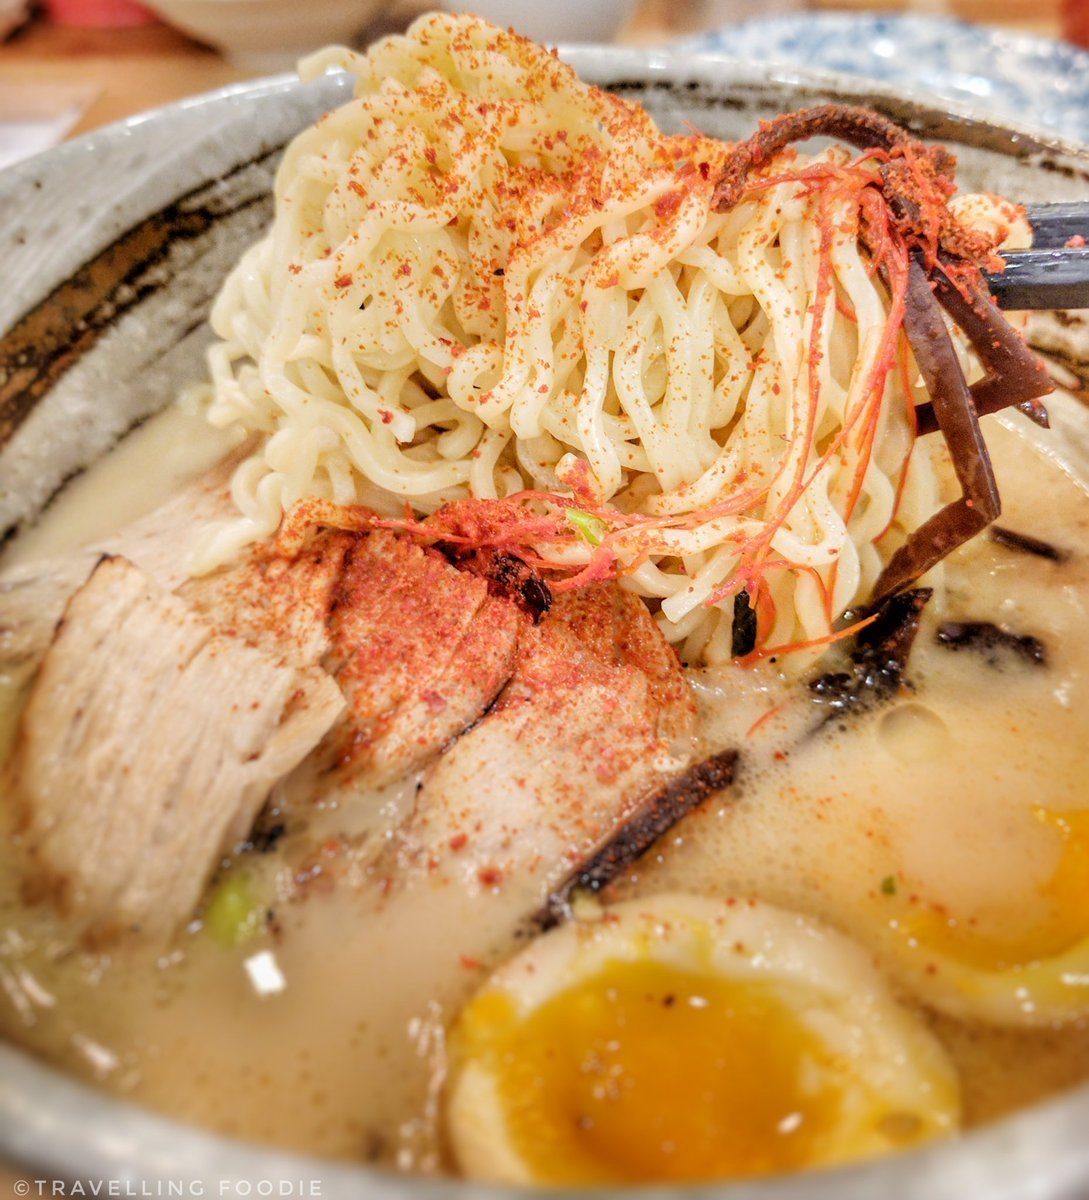 Travelling Foodie eats Toroniku Ramen at Moji Japanese Eatery in Markham